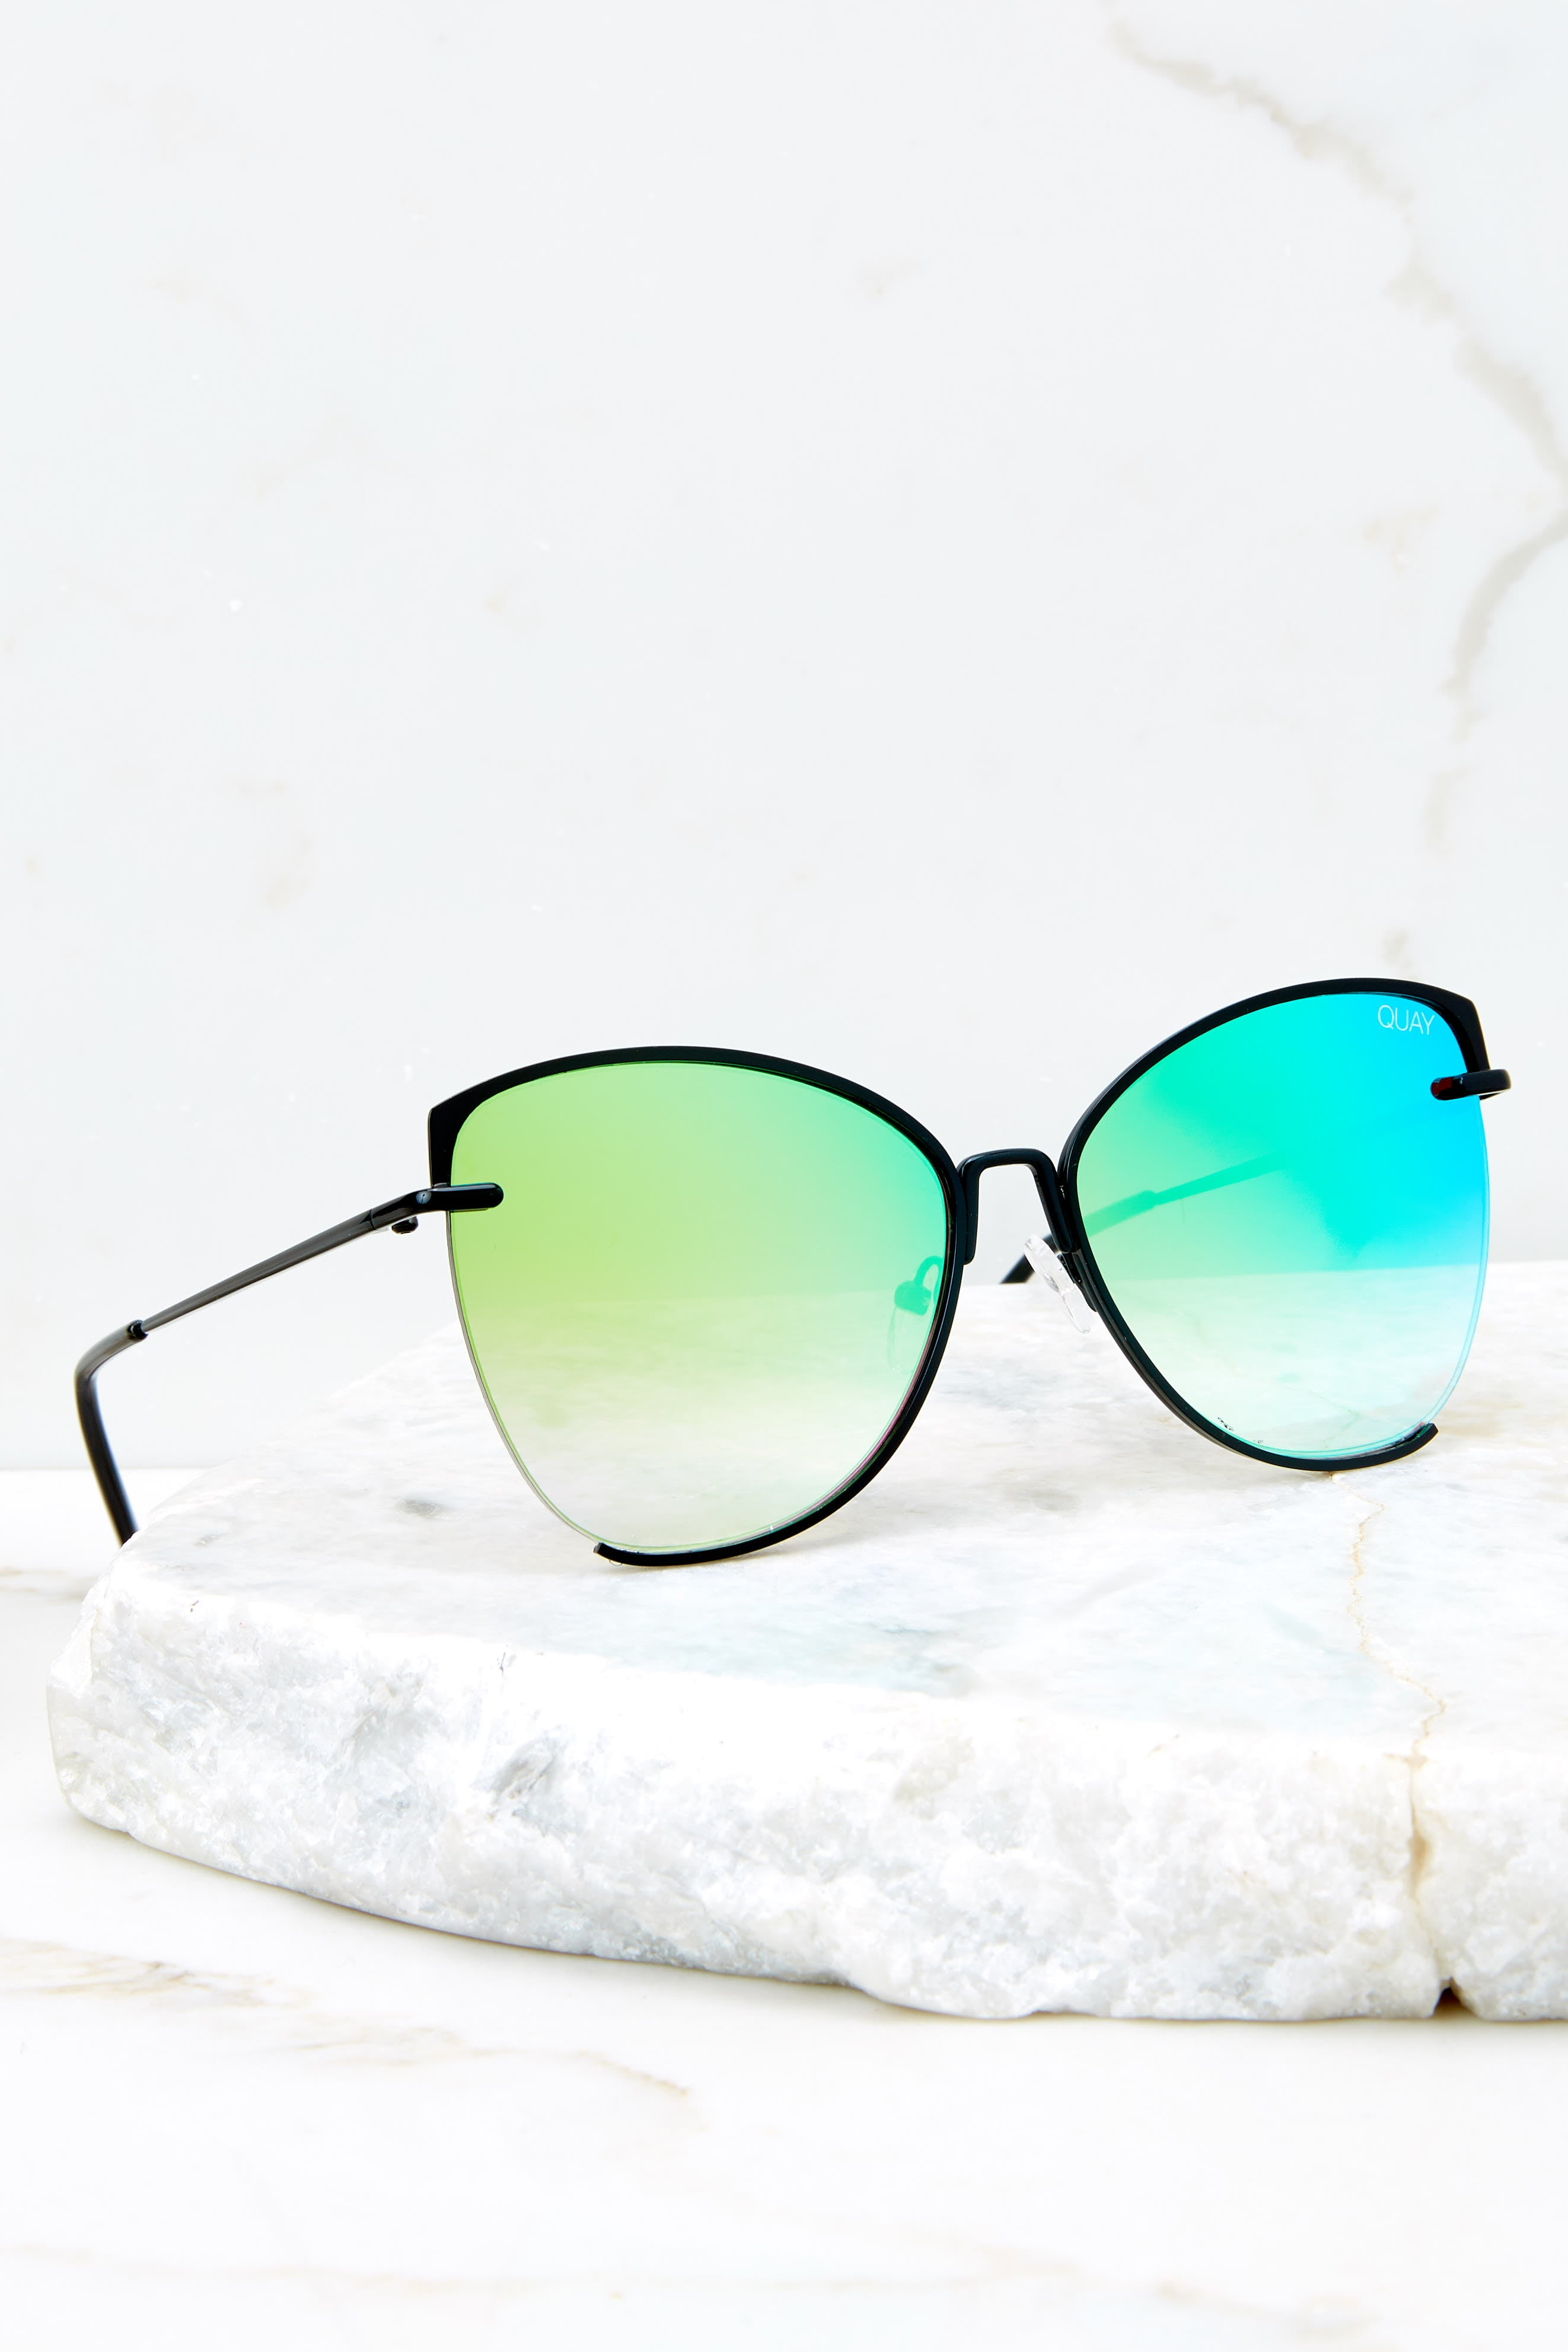 2 Dusk To Dawn Black Pink Rainbow Sunglasses at reddressboutique. Dusk To Dawn Black Pink Rainbow Sunglasses at reddressboutique.comcom